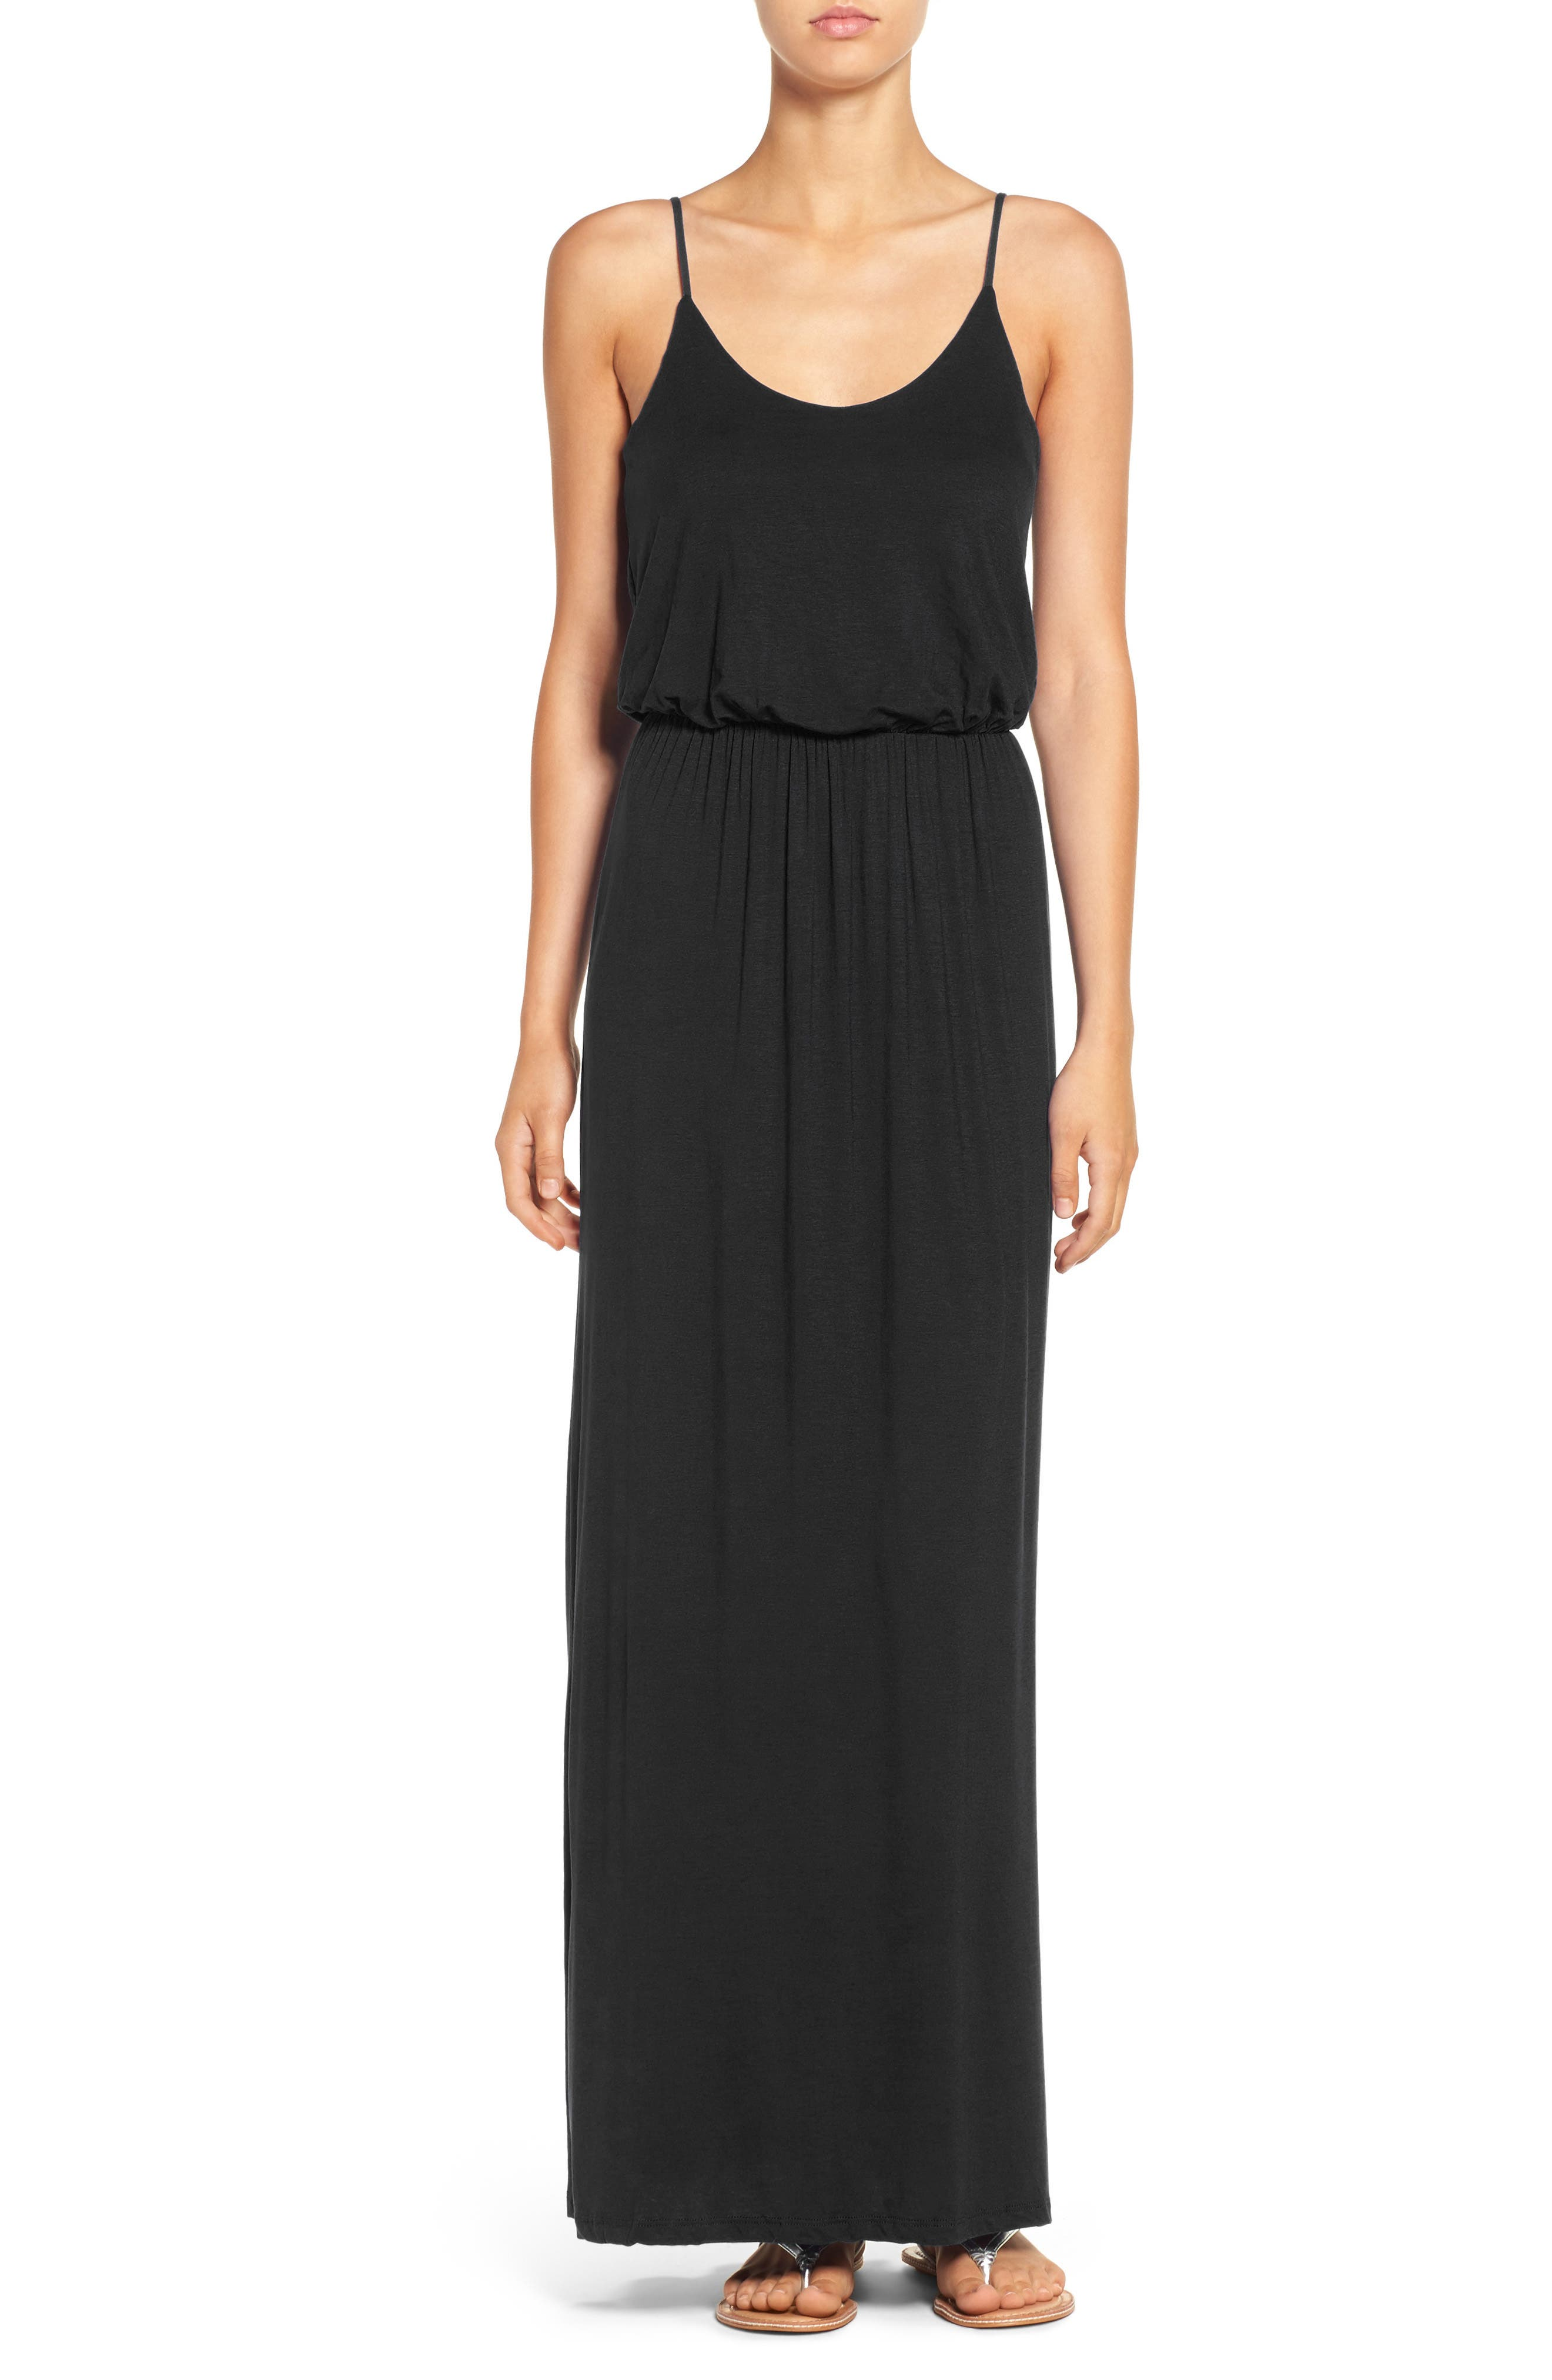 ---, Knit Maxi Dress, Main thumbnail 1, color, BLACK